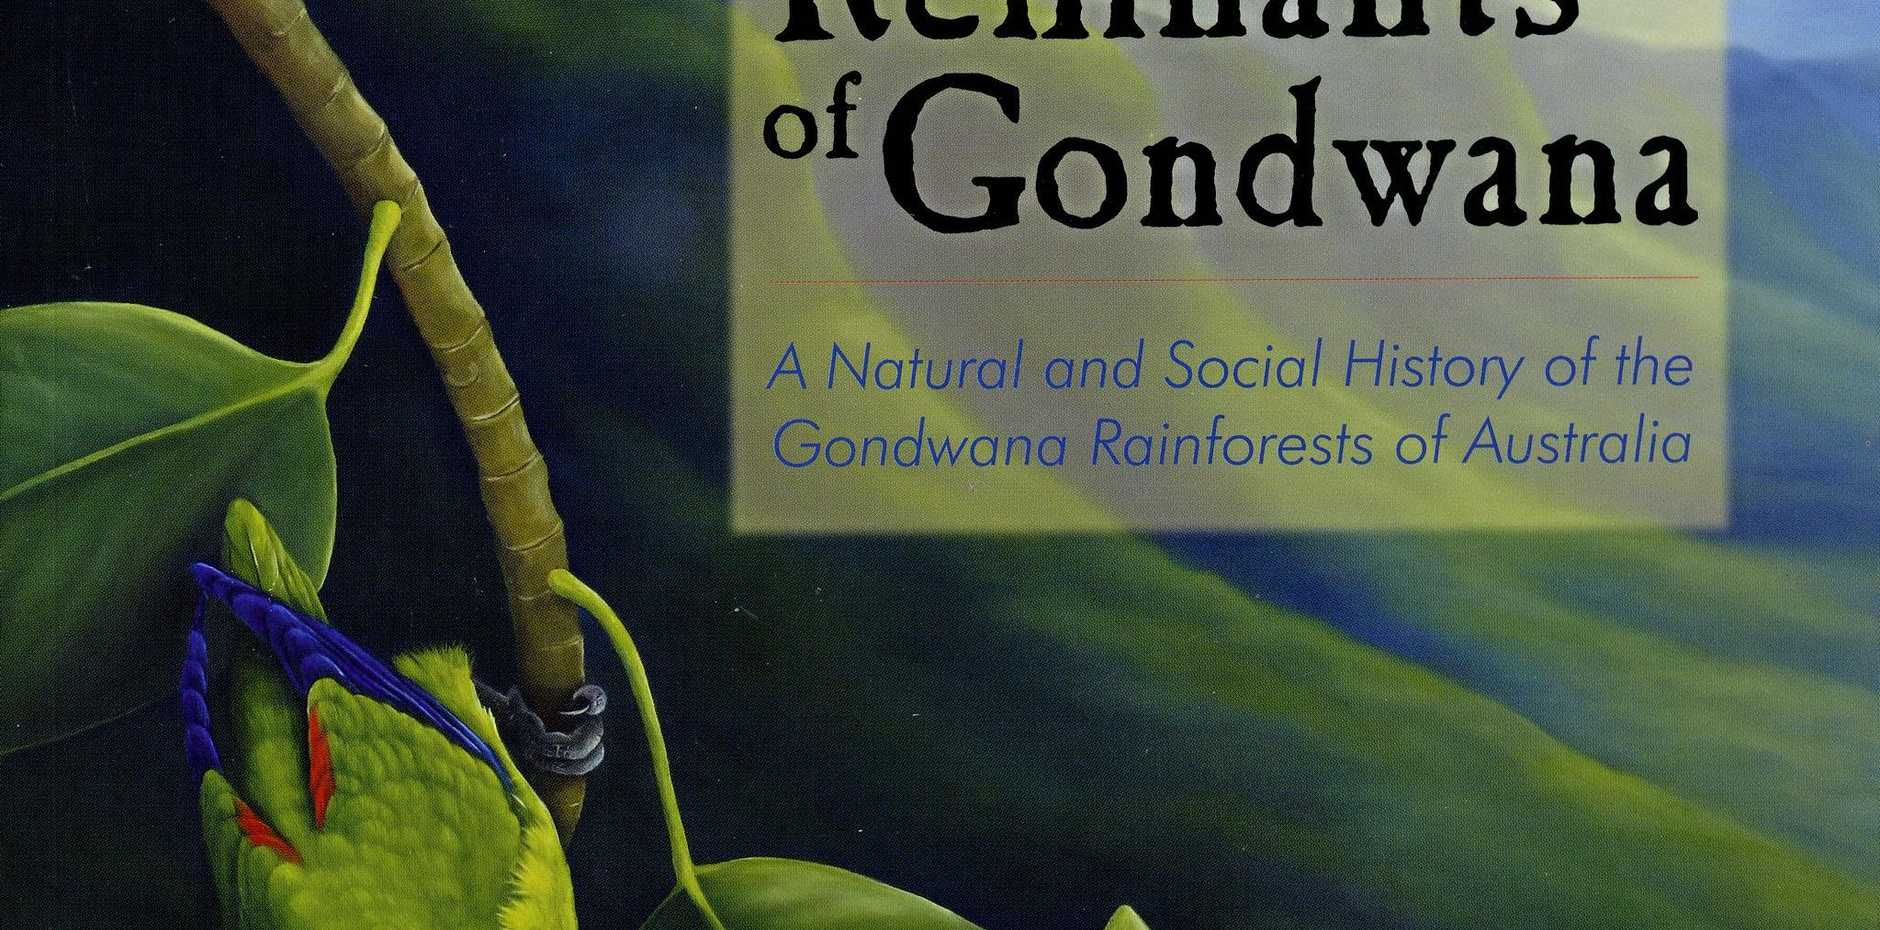 Book cover of Remnants of Gondwana - A natural and social history of the Gondwana rainforests of Australia.